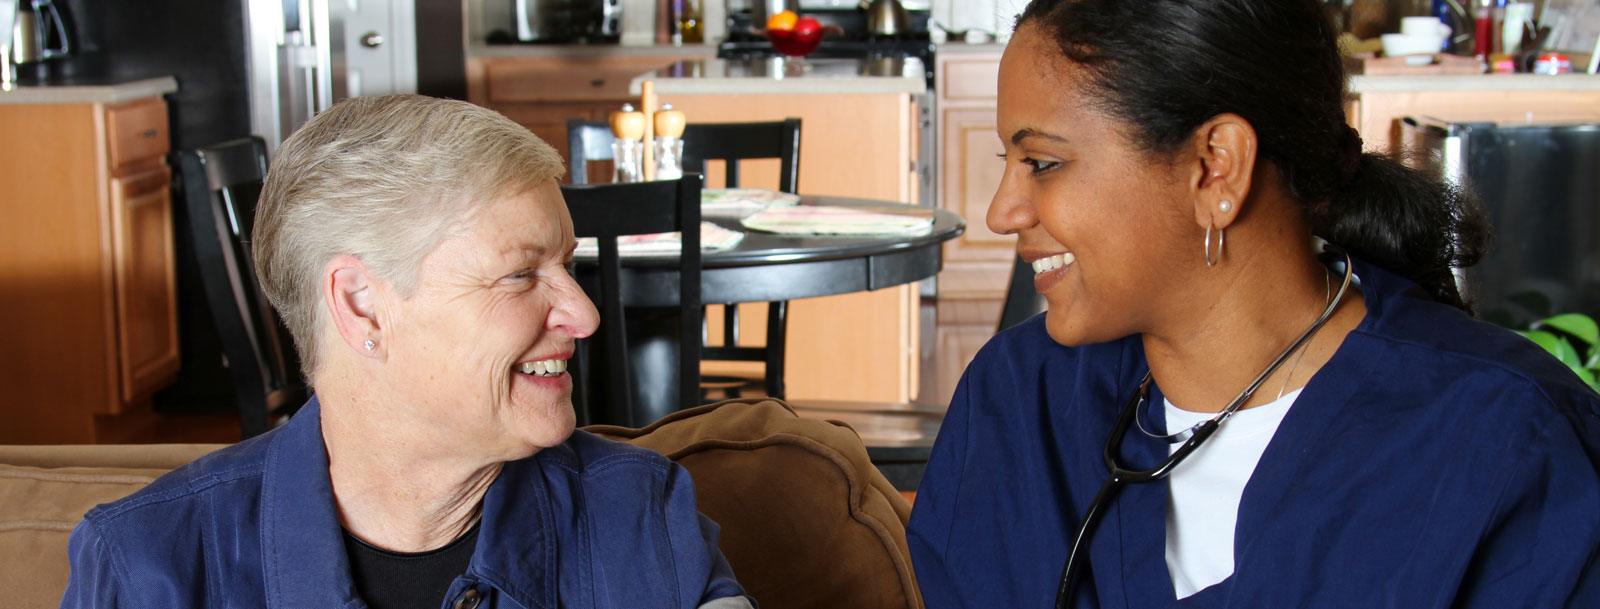 Home health care services at the senior facility